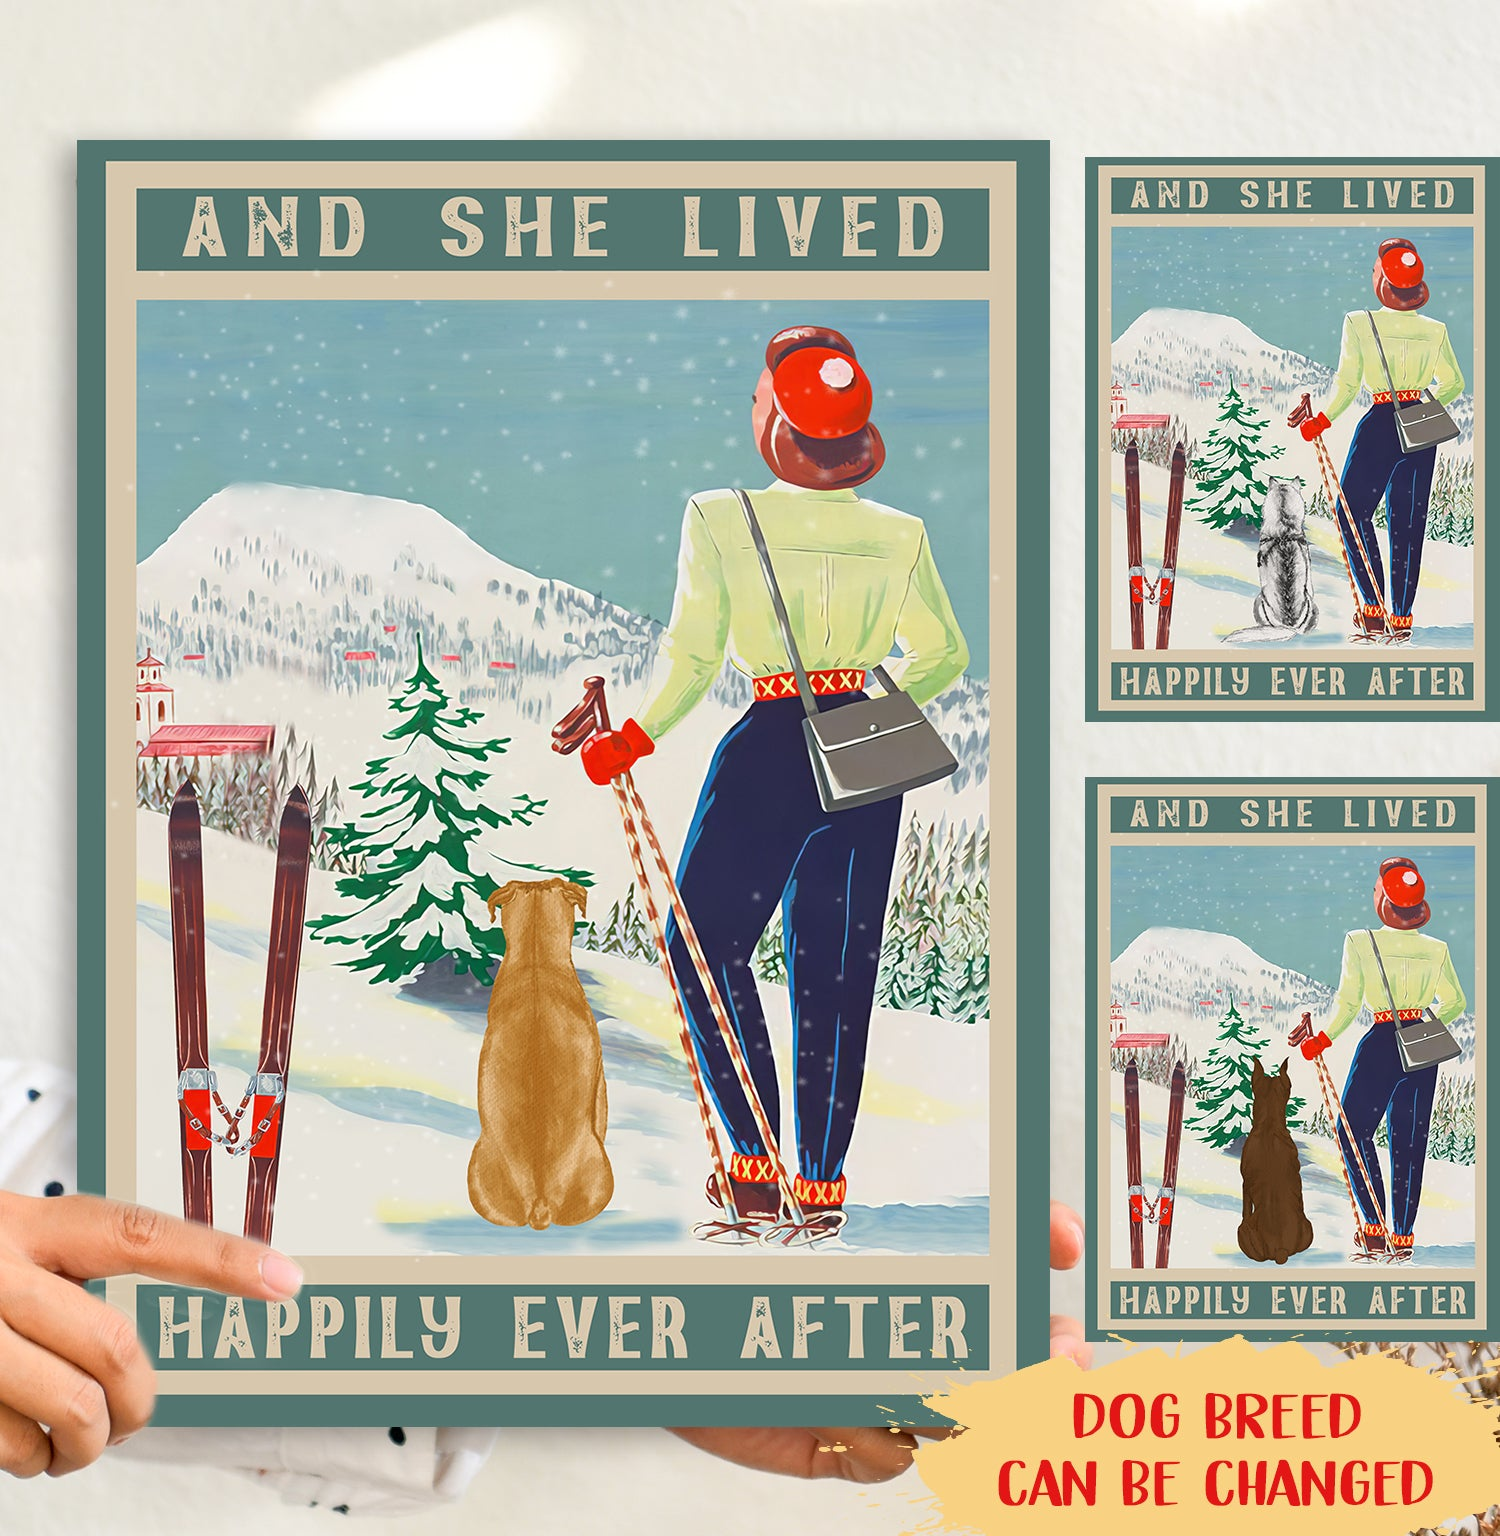 And She Lived Happily Ever After - Dog And Skiing - Personalized Custom Canvas